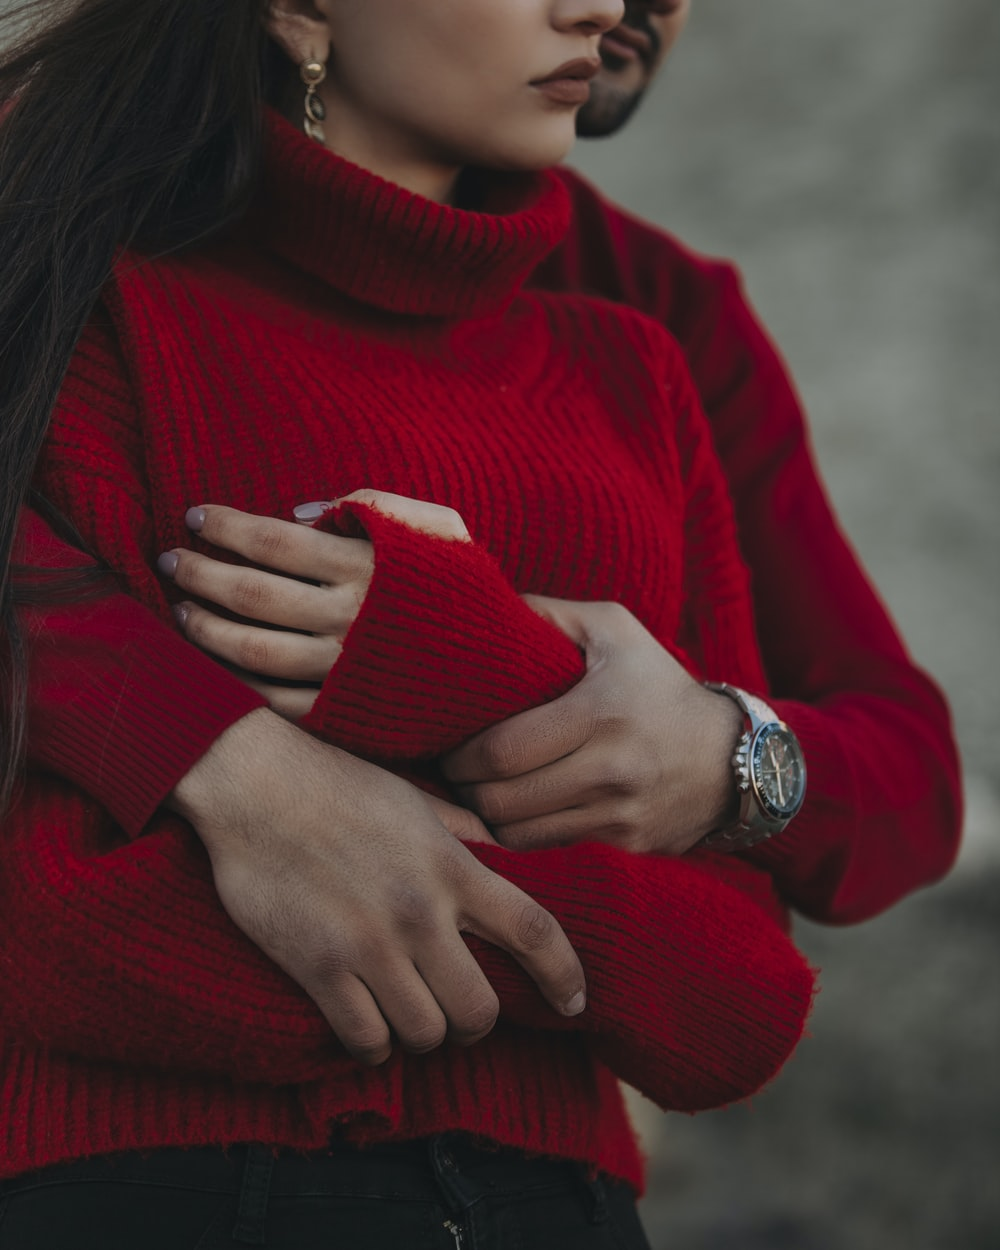 woman in red sweater wearing silver ring